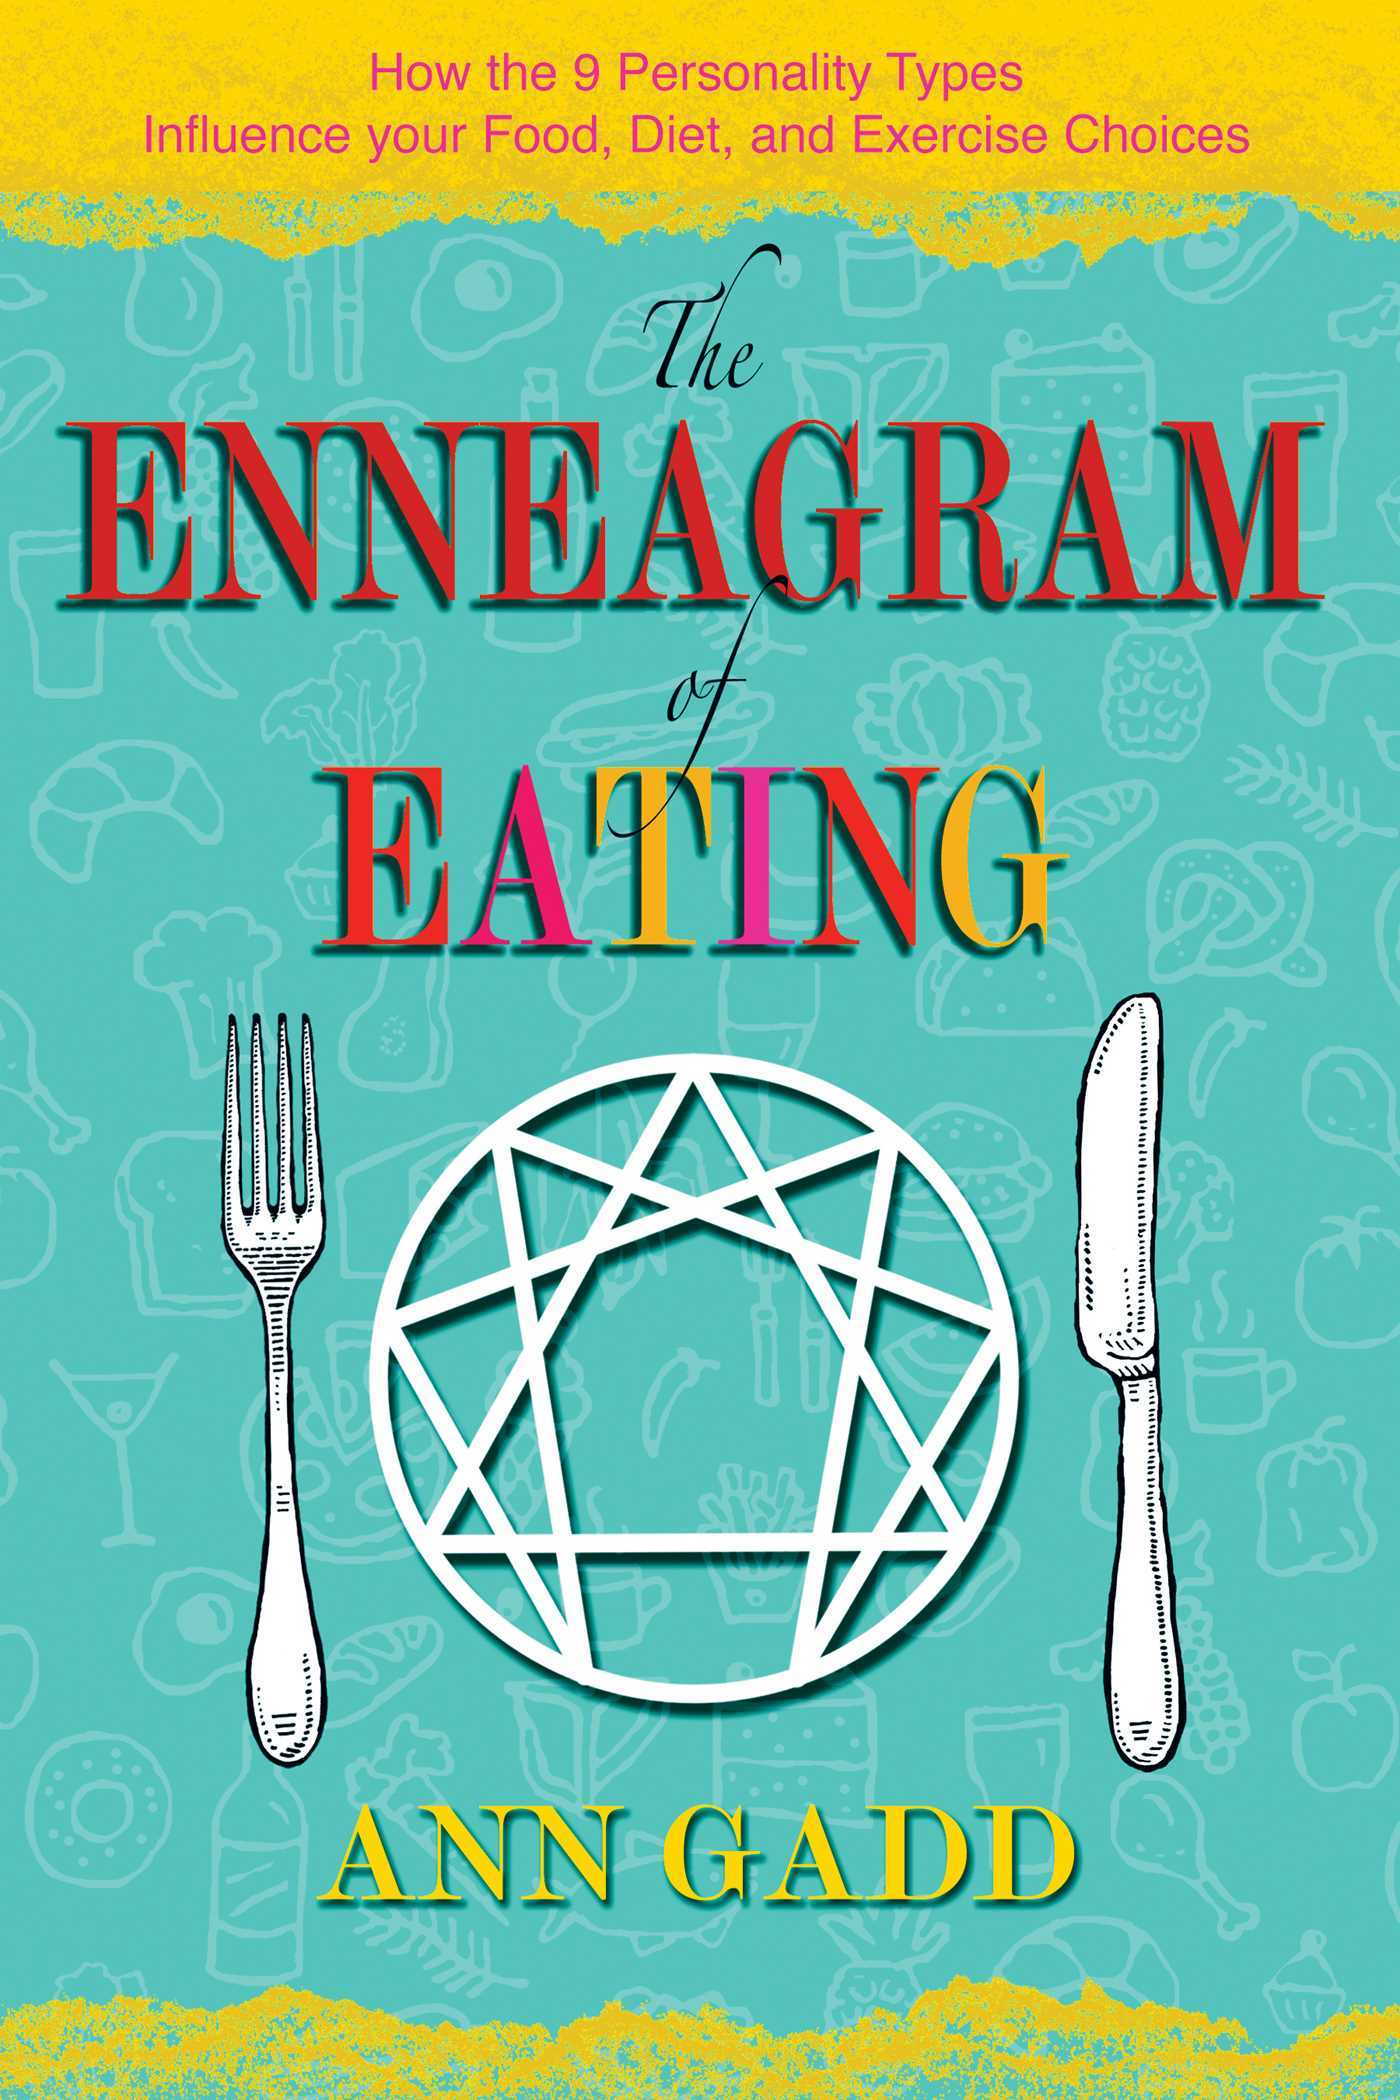 The-Enneagram-of-Eating-How-the-9-Personality-Types-Influence-Your-Food-Diet-and-Exercise-Choices